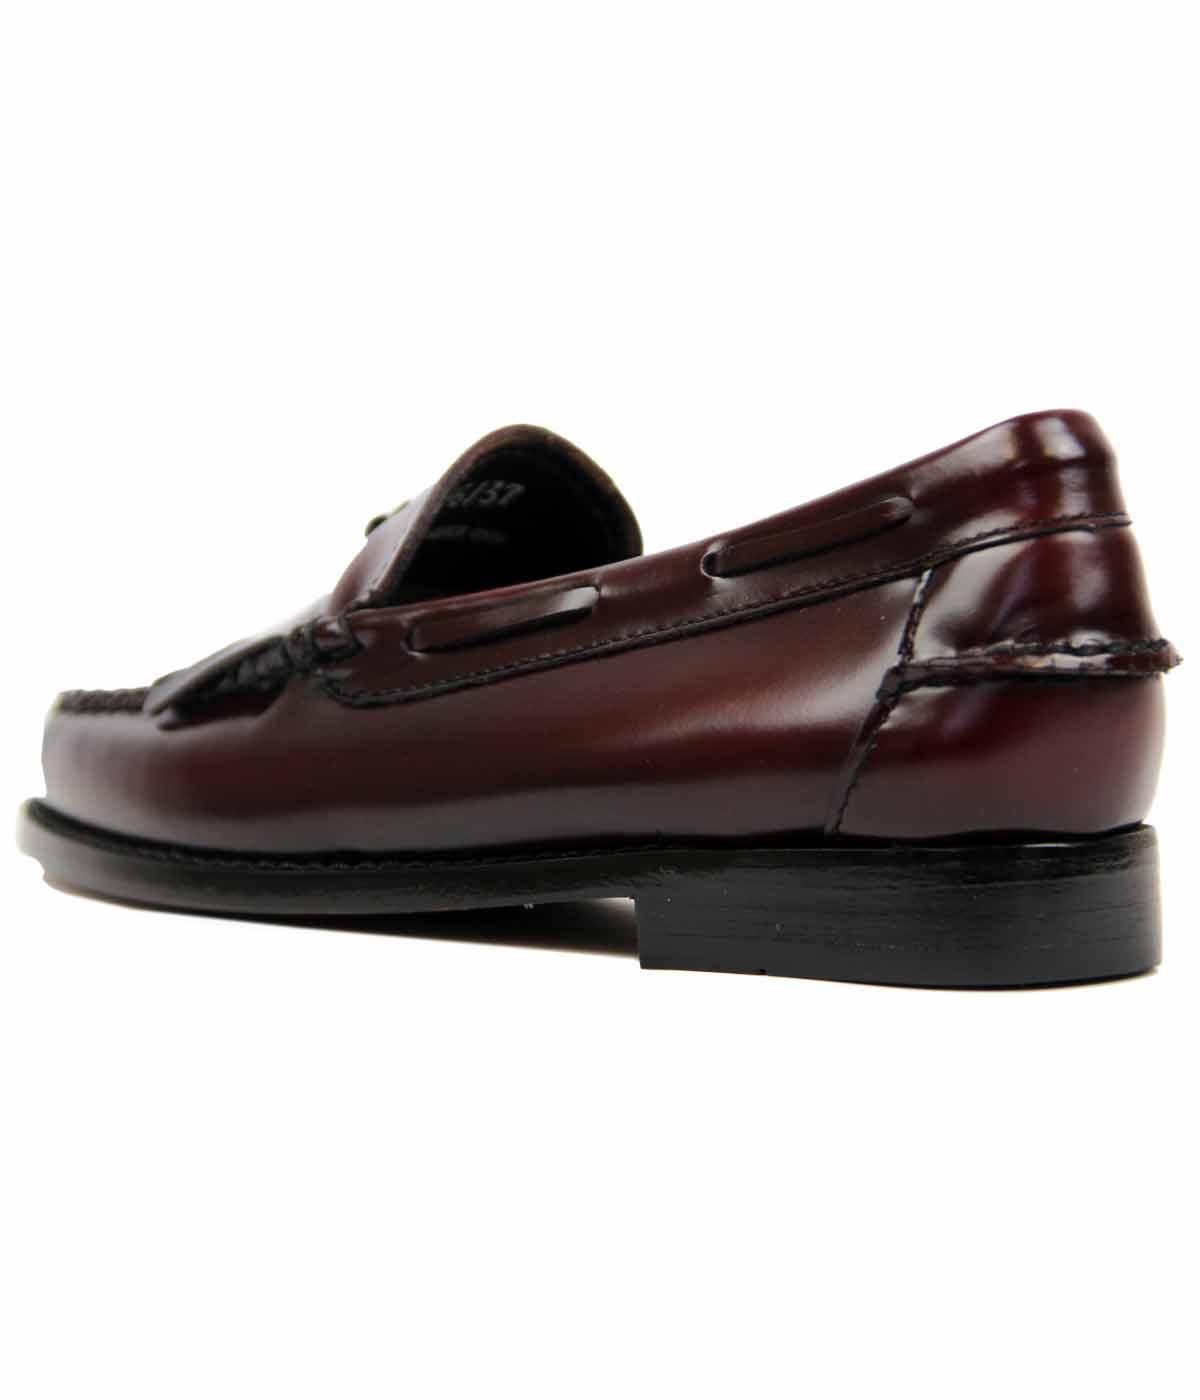 5f920352962 BASS WEEJUNS Esther Retro Mod 60s Kilted Loafer in Wine